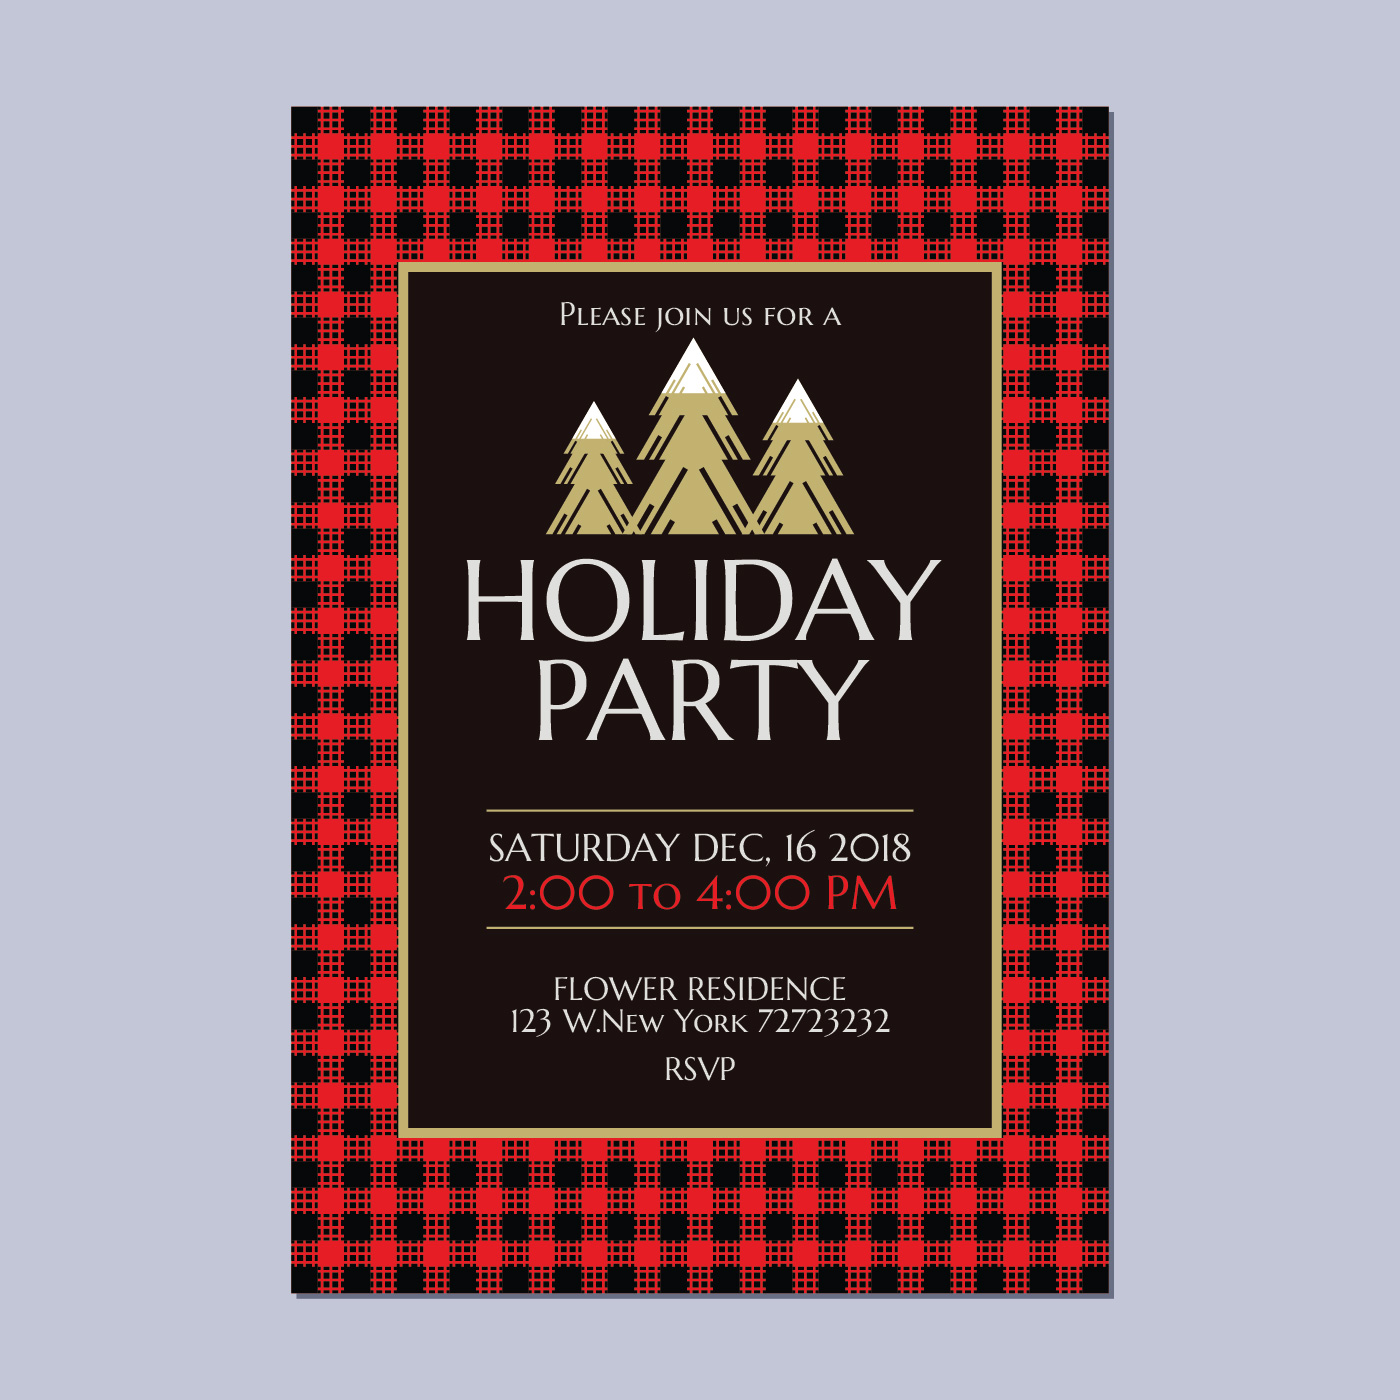 holiday party free vector art